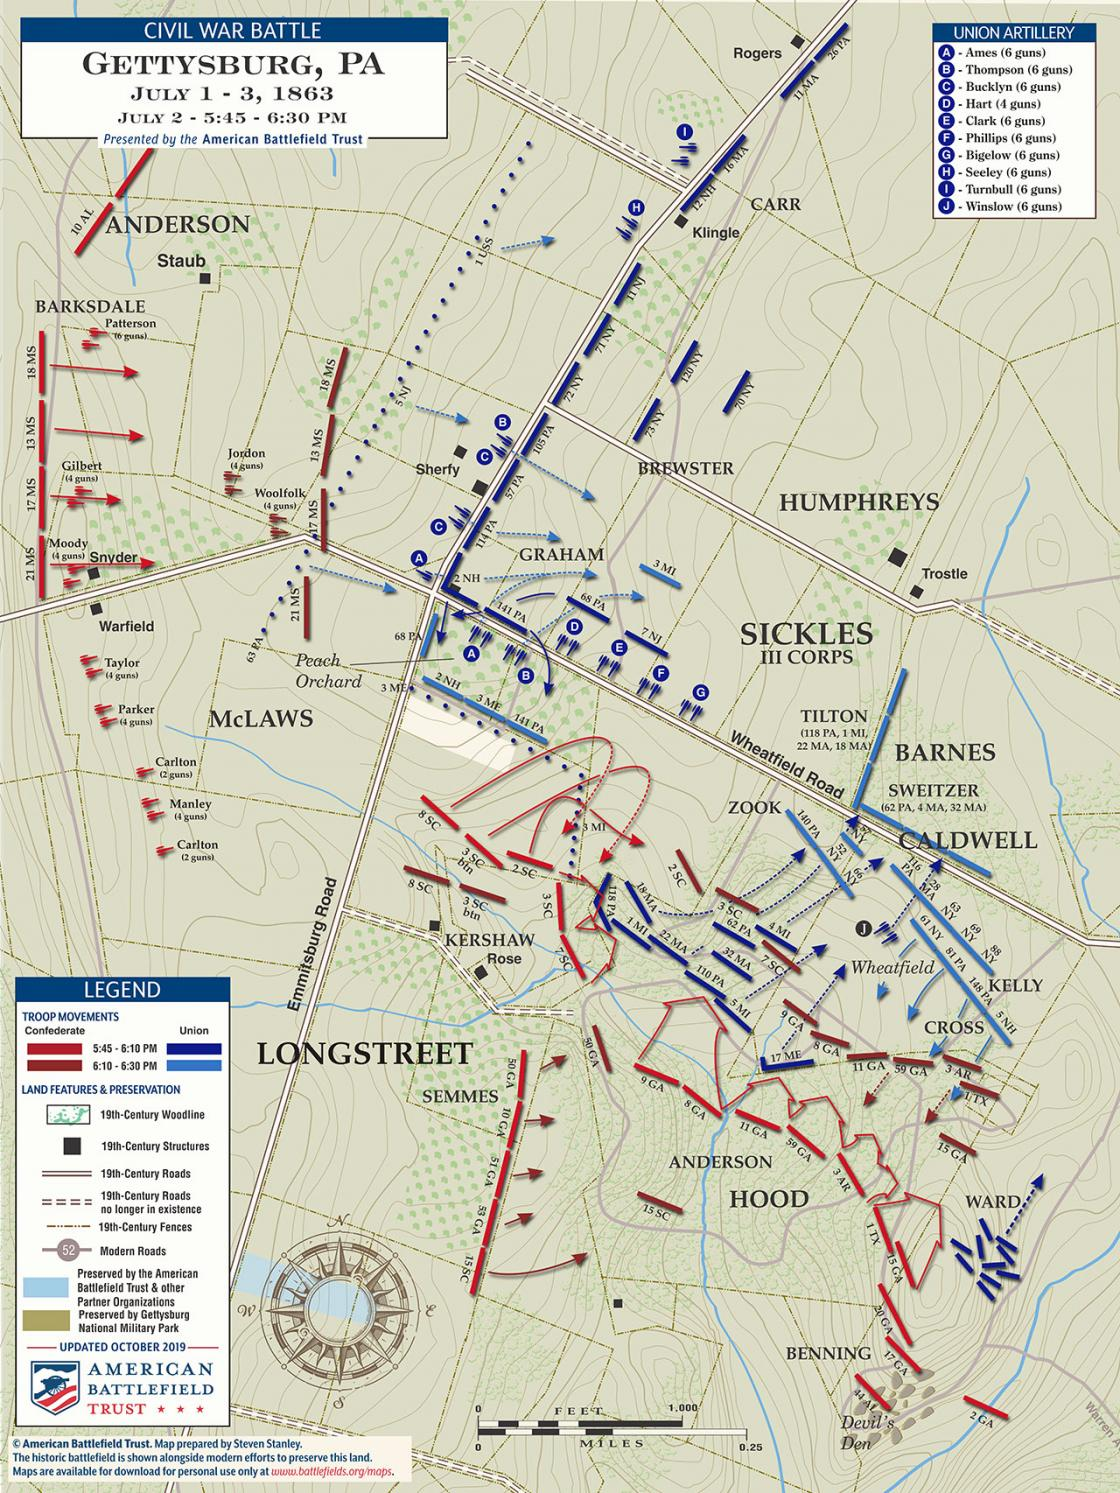 Gettysburg - The Wheatfield and Peach Orchard - July 2, 1863 - 5:45pm to 6:30pm (October 2019)